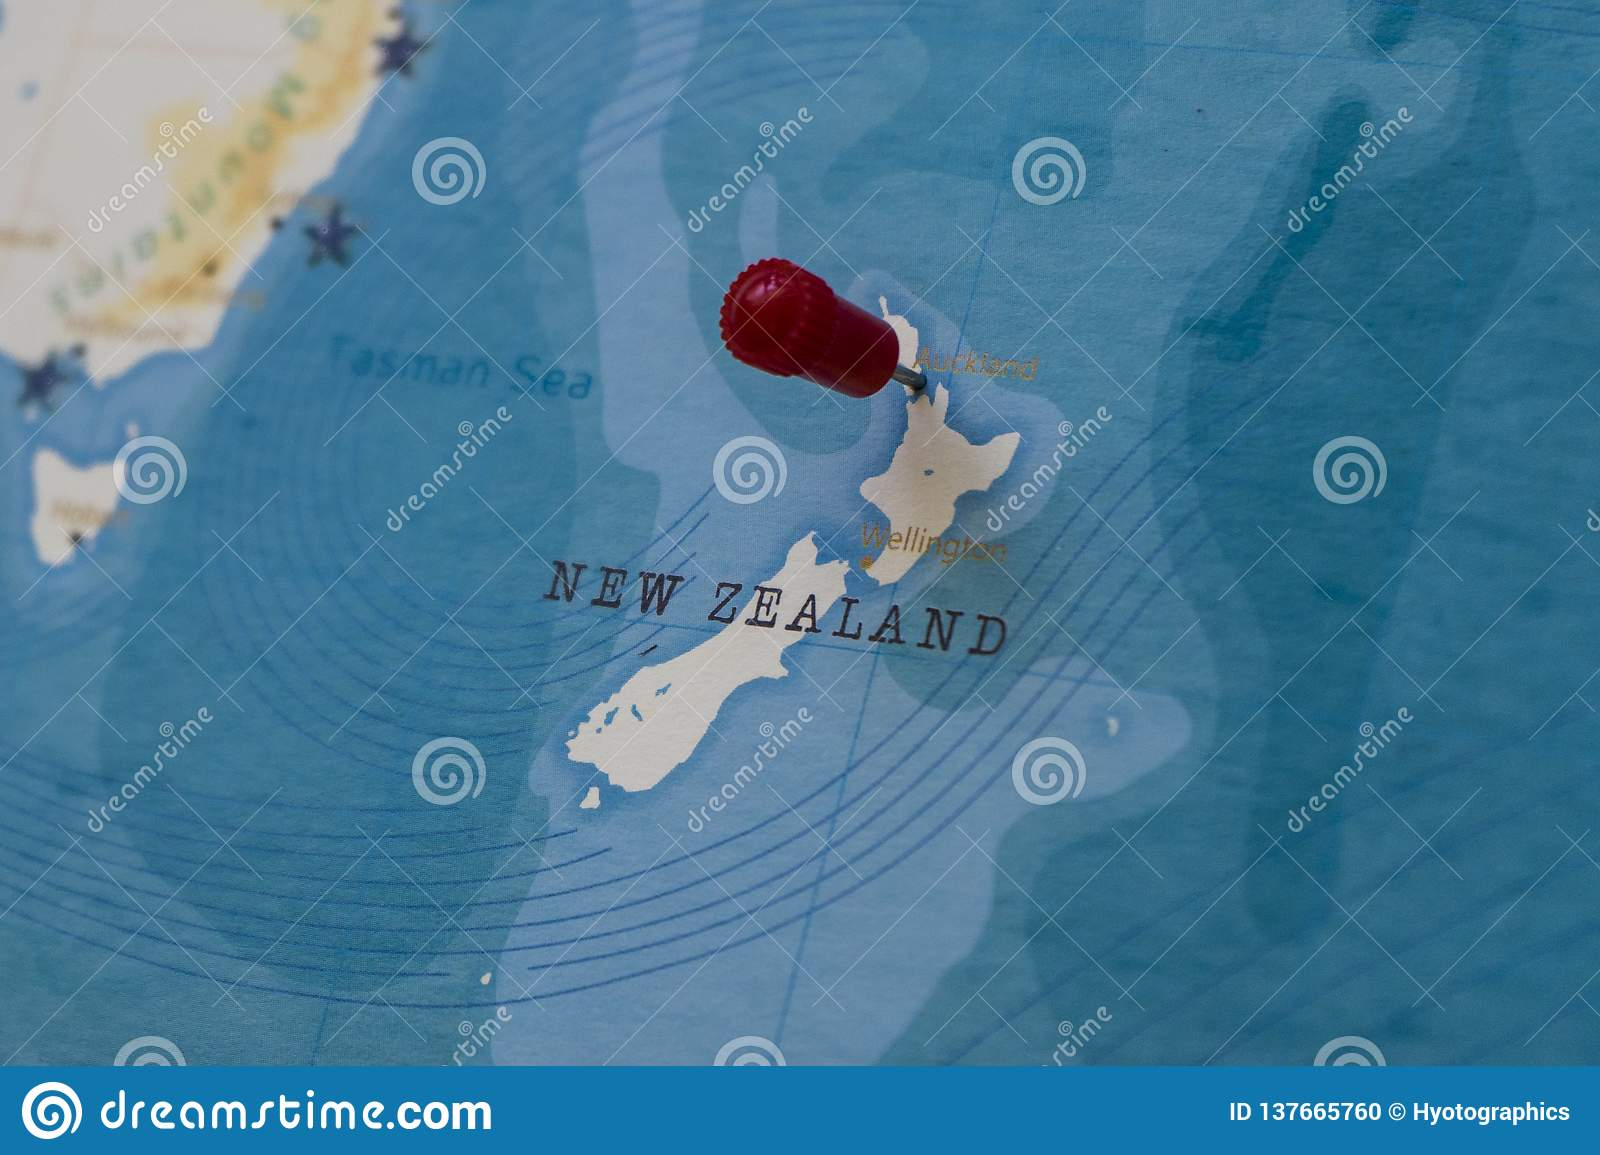 A Pin On Auckland, New Zealand In The World Map Stock Photo ...